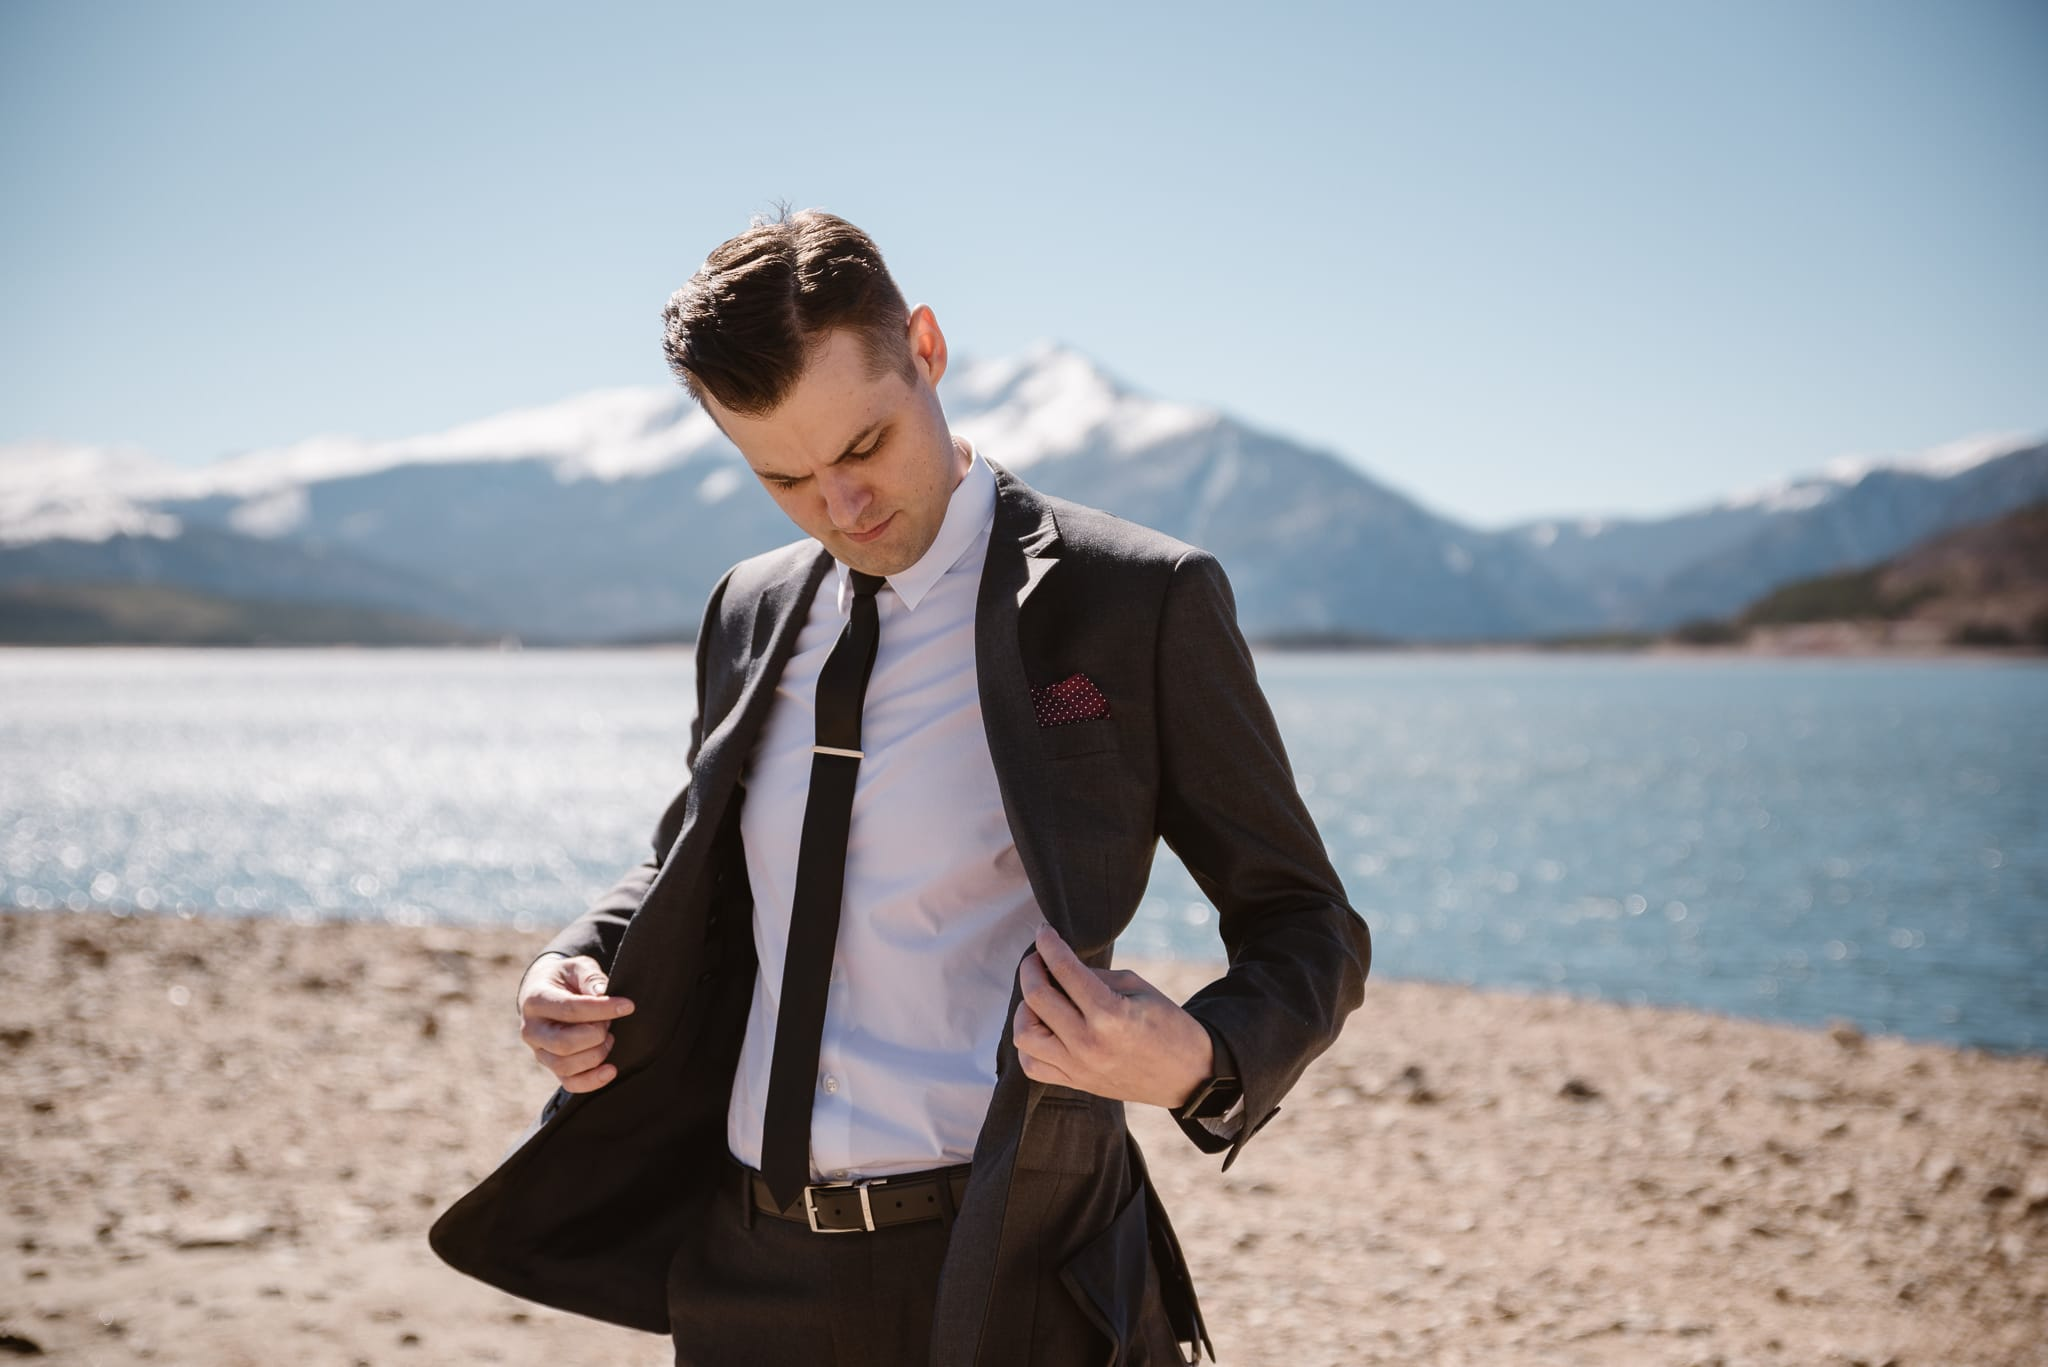 Groom portraits at Lake Dillon in Summit County for Silverthorne Pavilion wedding, Colorado wedding photographer